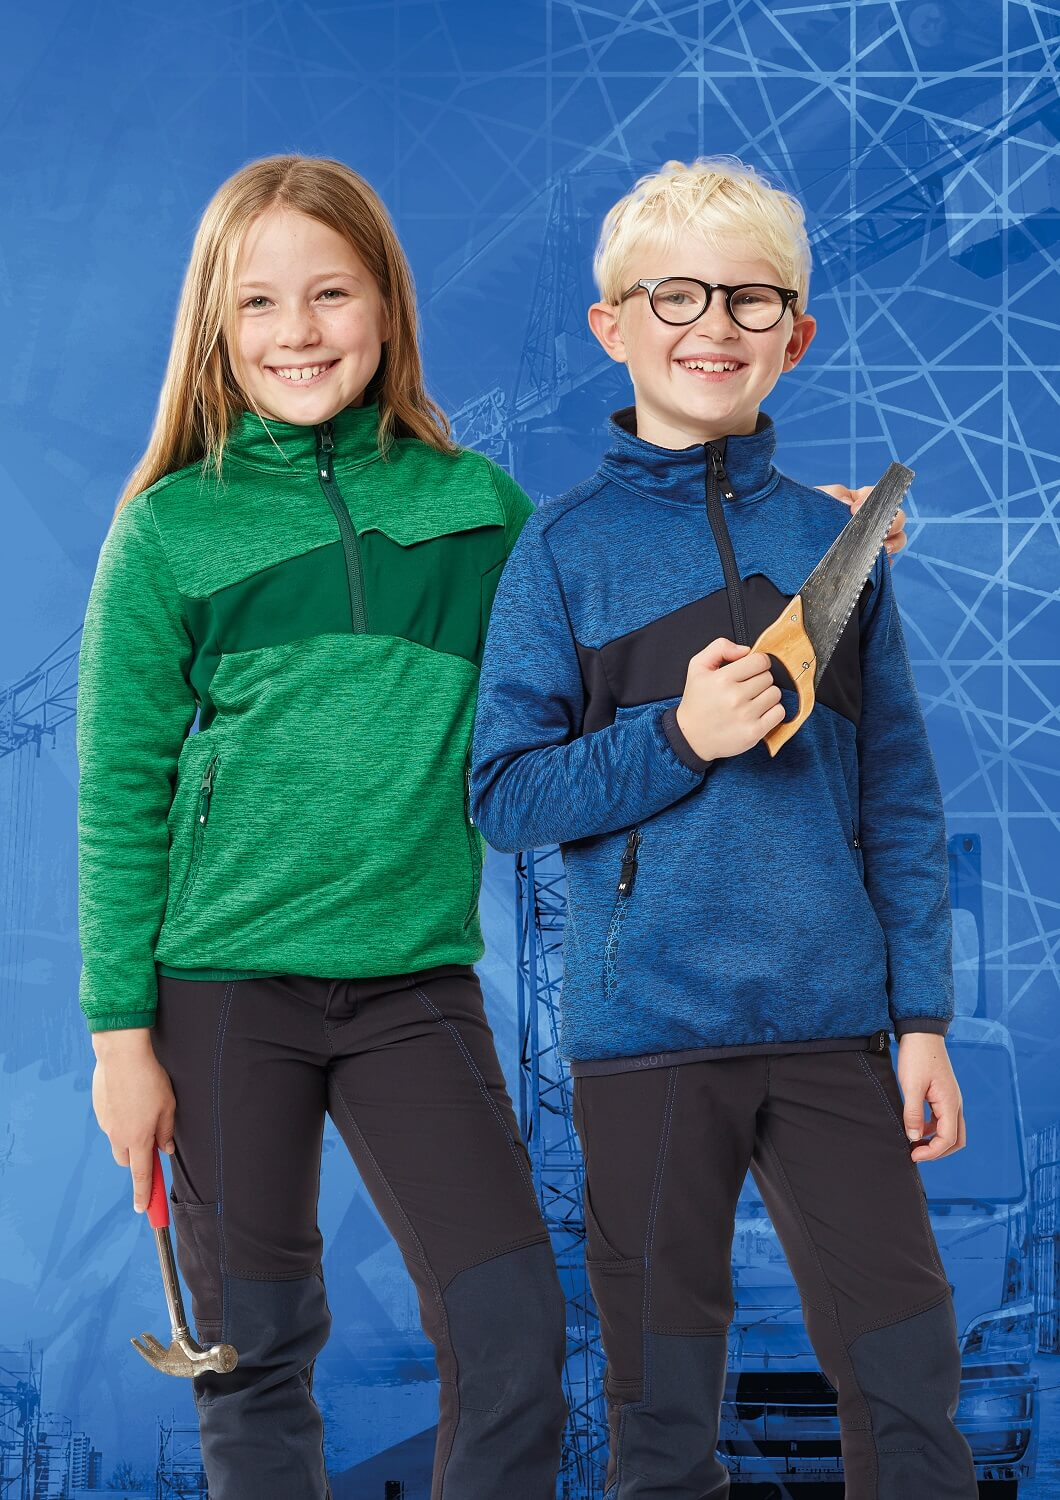 Children's Clothing - MASCOT® ACCELERATE Brand DNA